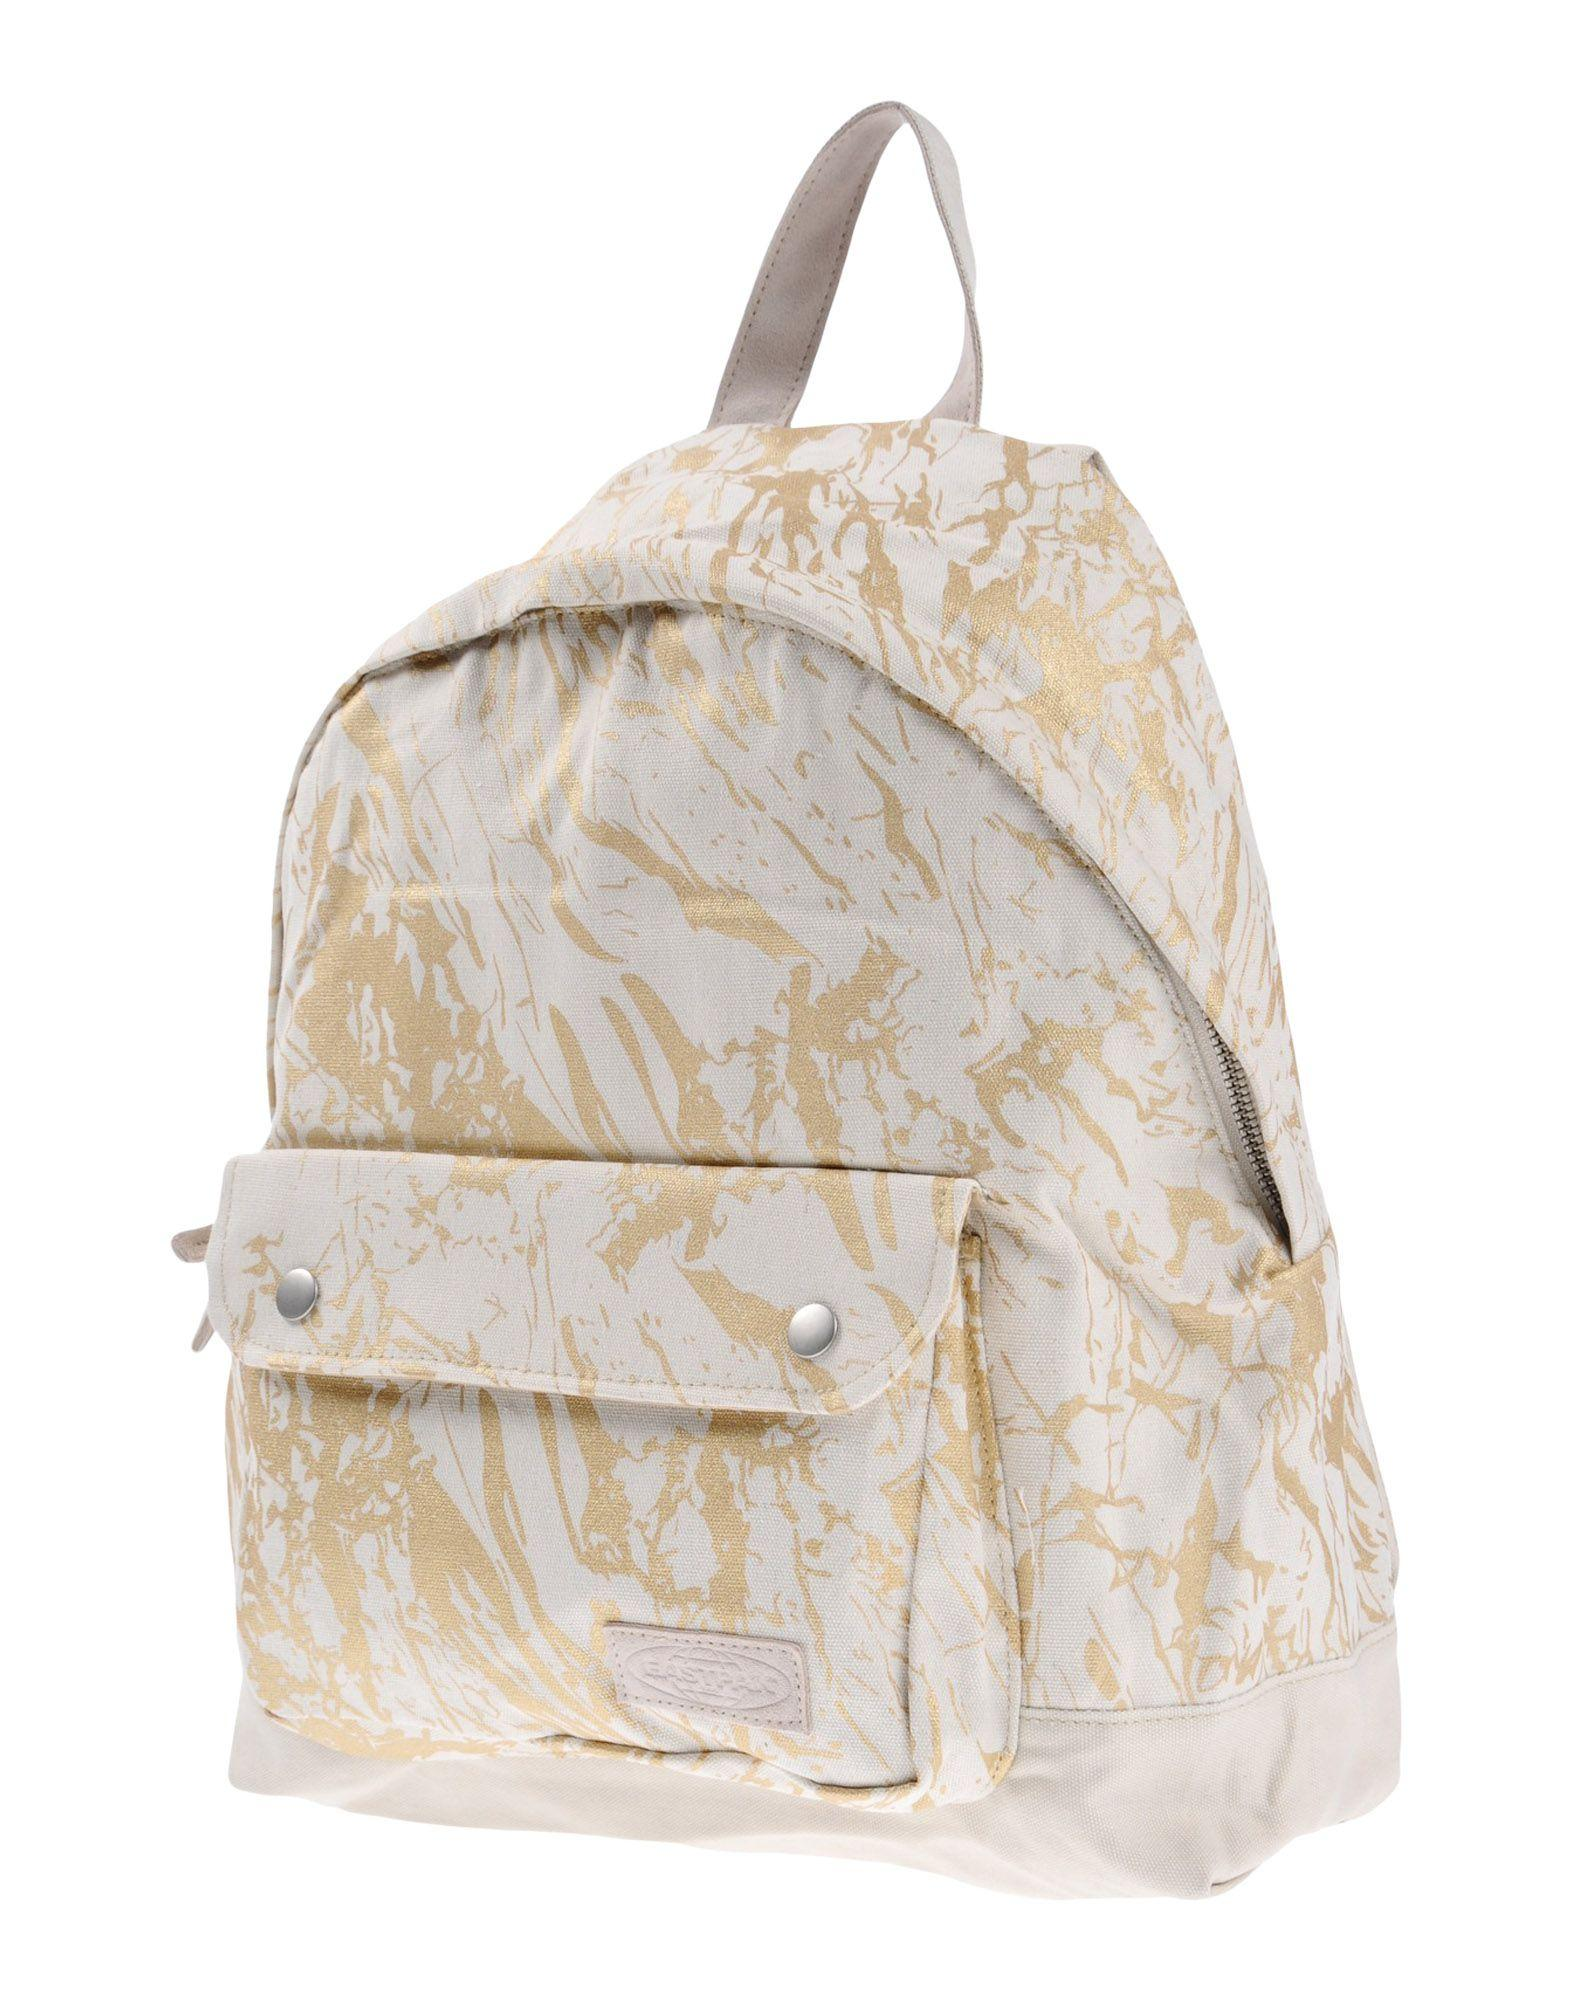 Eastpak Backpack & Fanny Pack In Beige